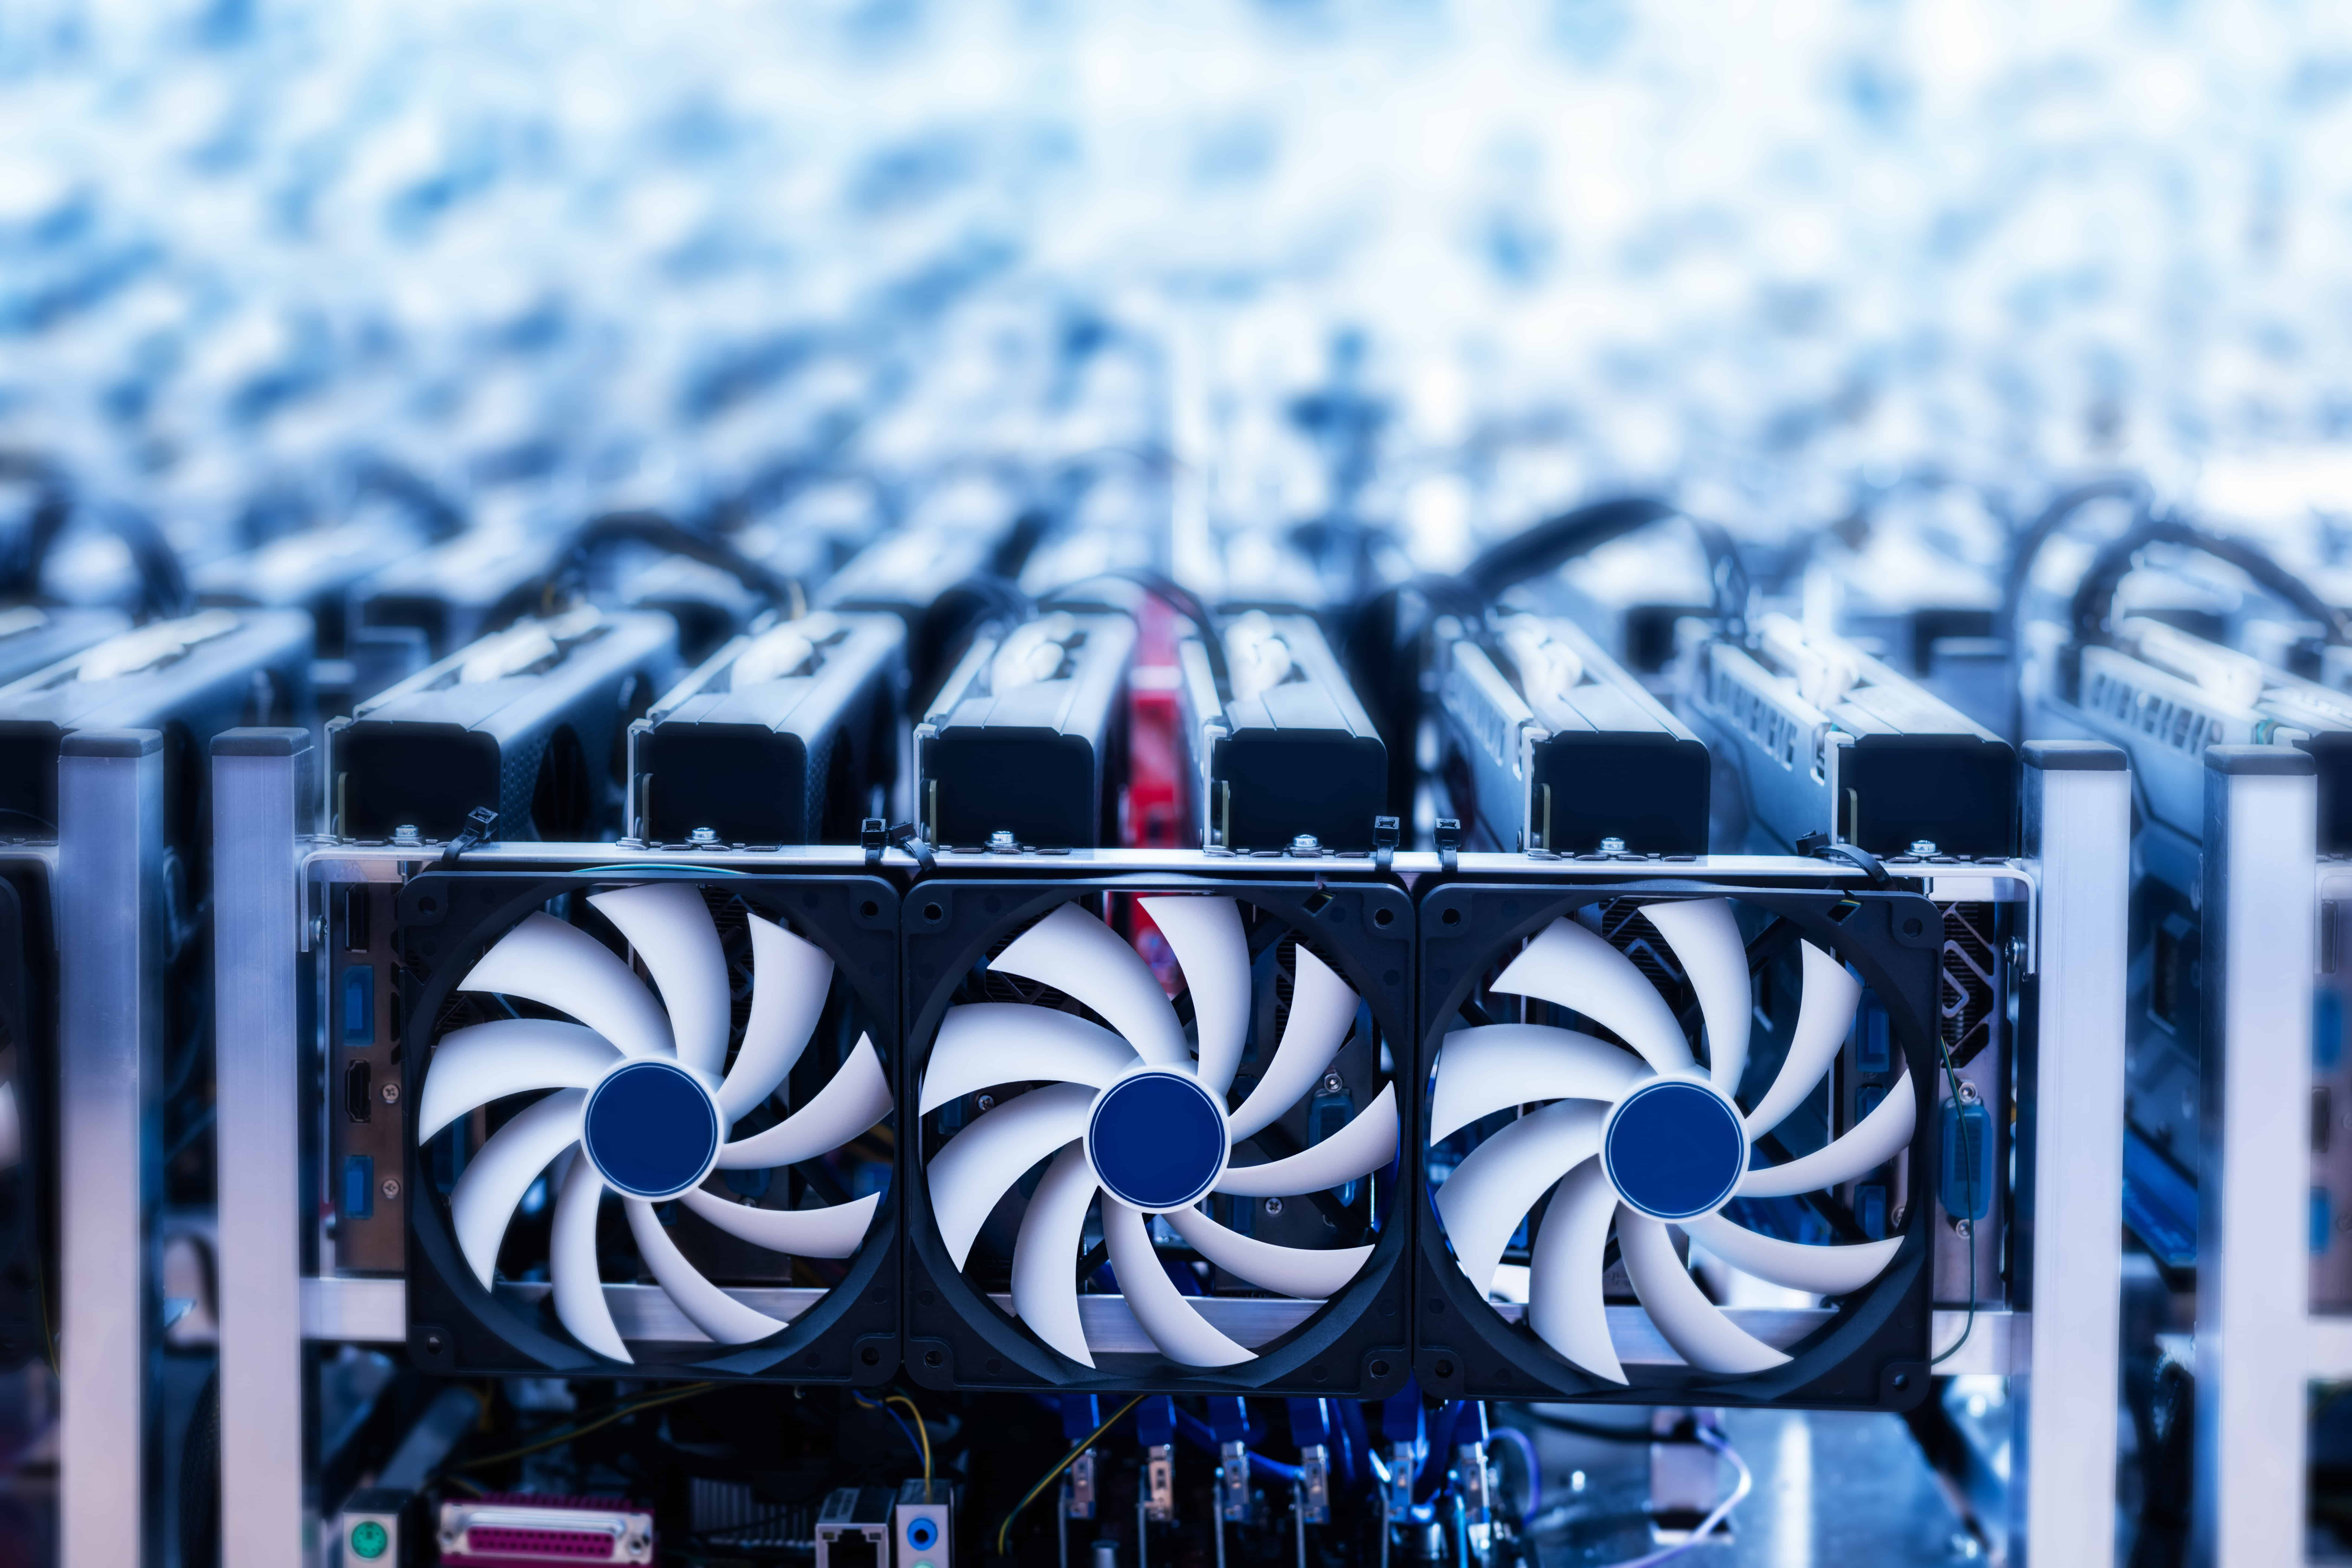 Bitcoin miner. Cryptocurrency mining machines. IT device with cooling fans. Technology.